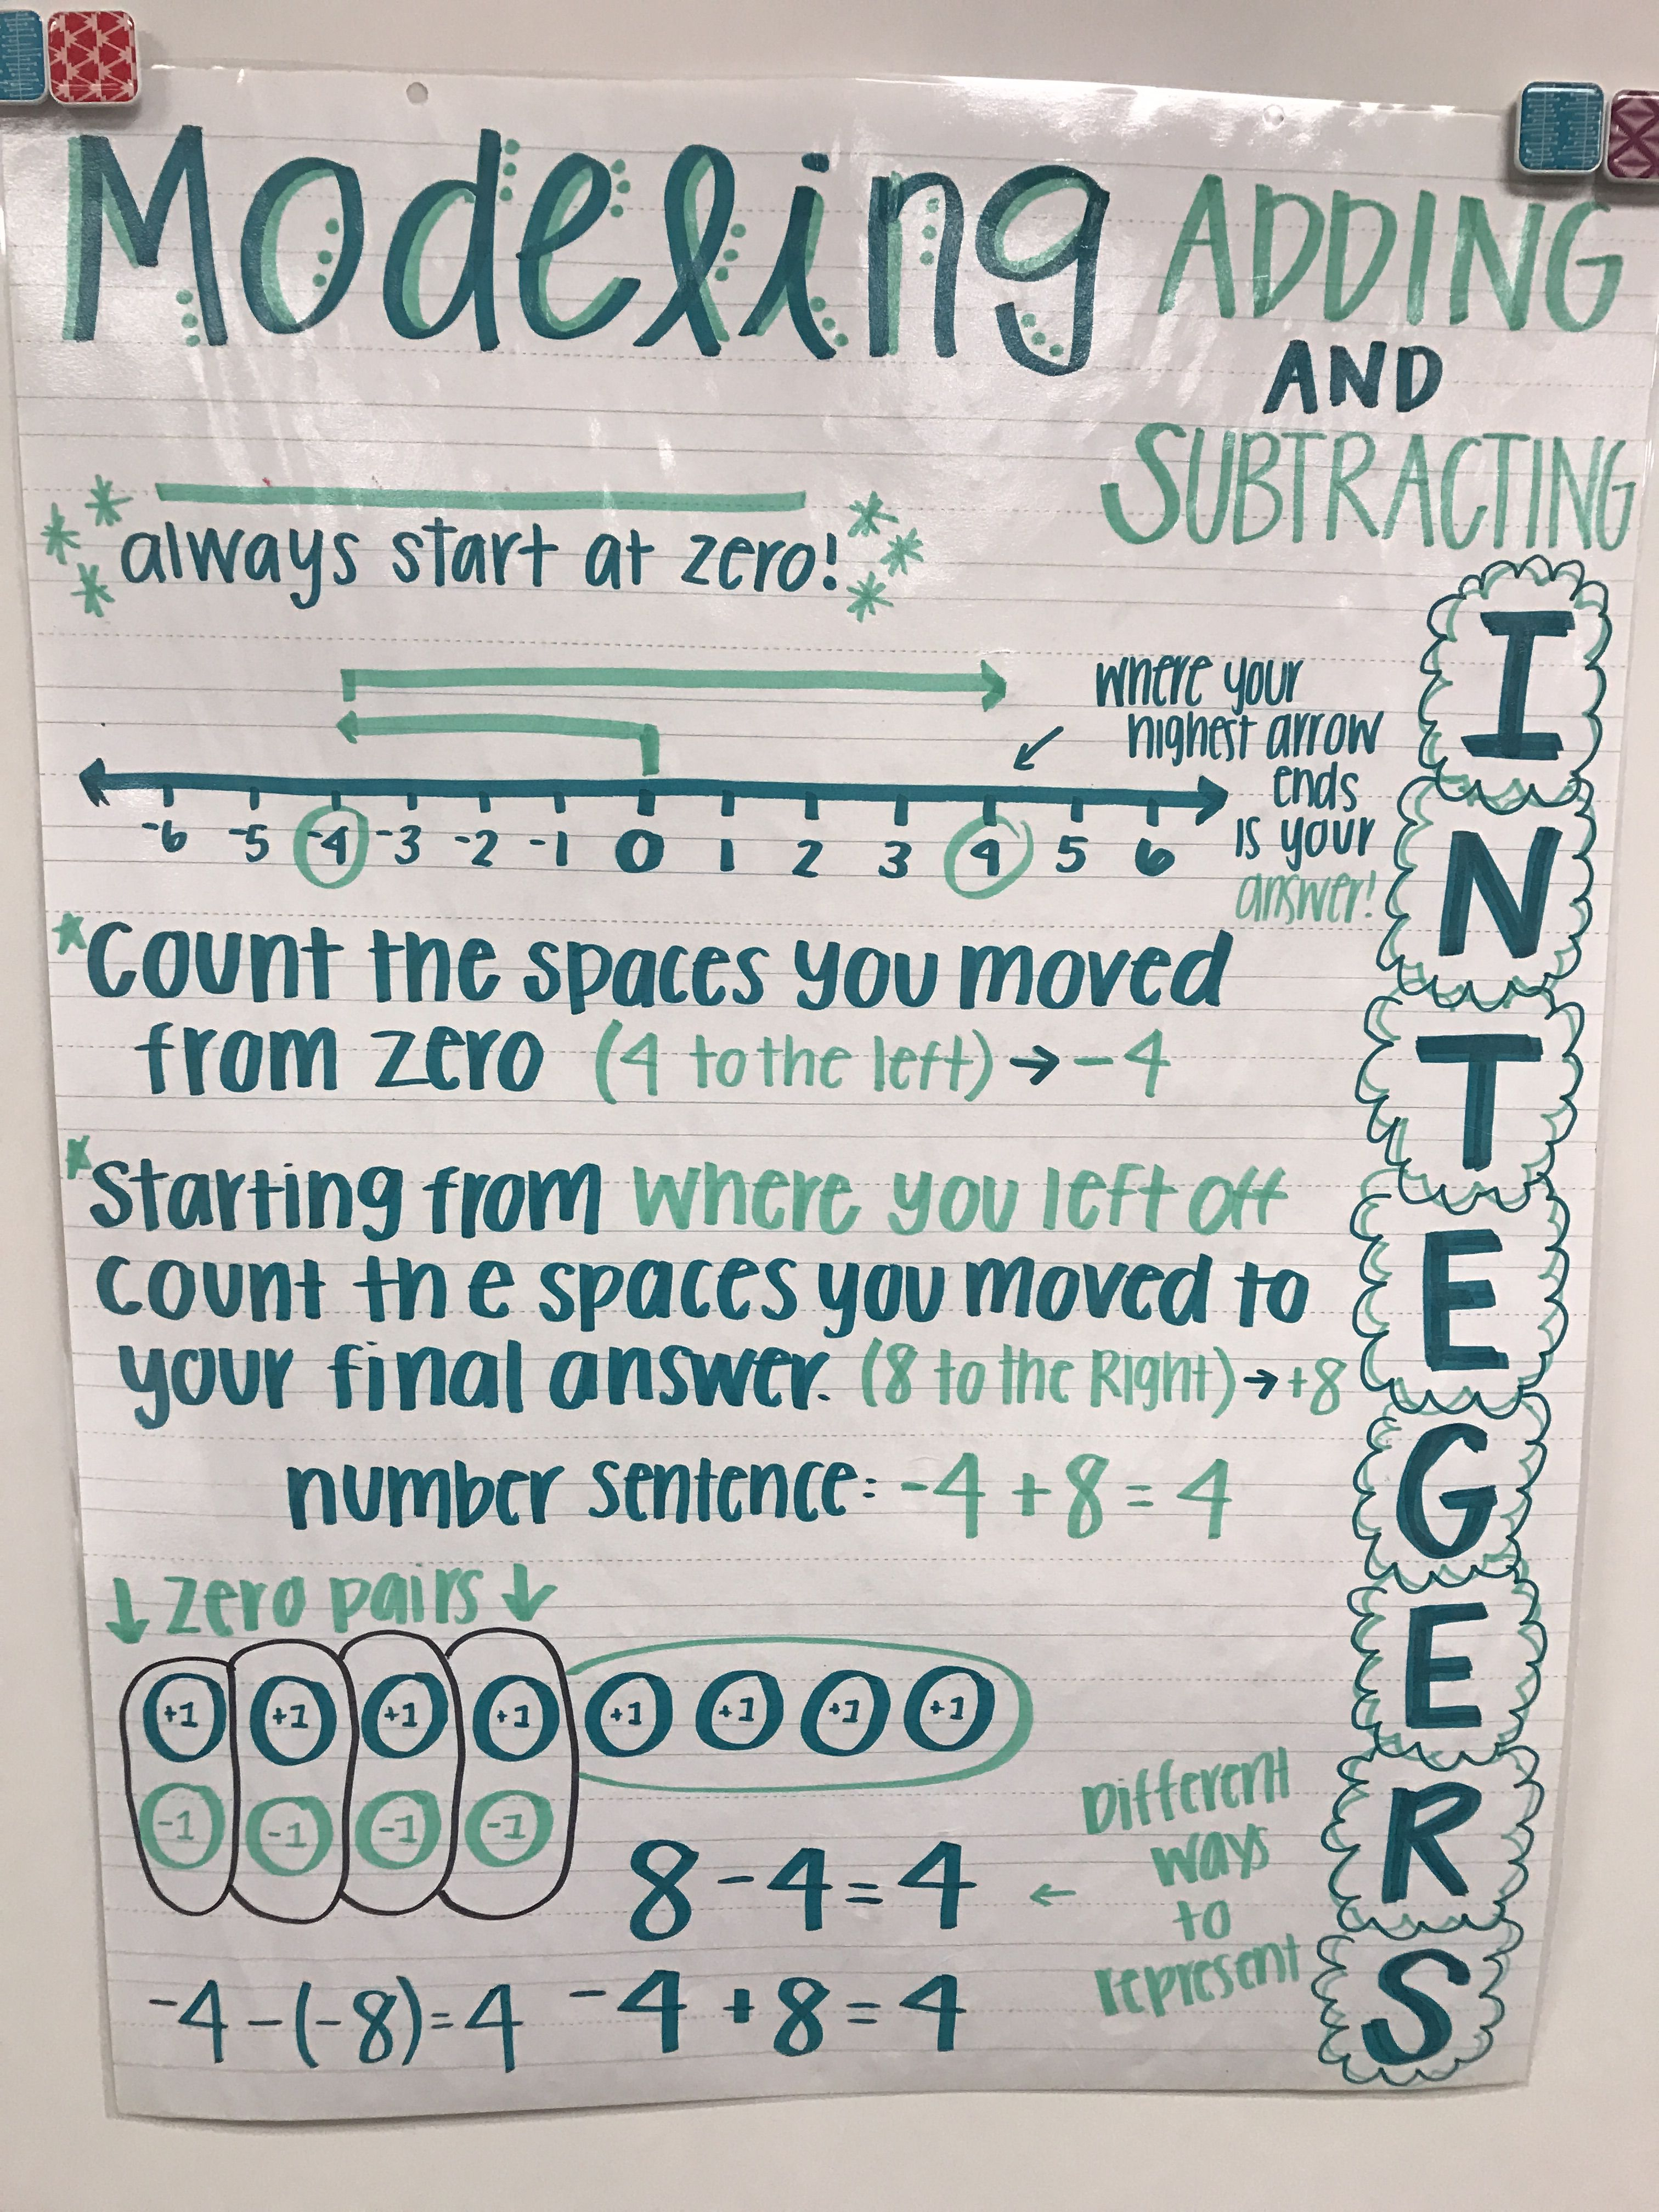 Adding And Subtracting Integers Adding And Subtracting Integers Anchor Chart Modelin Math Anchor Charts Integers Anchor Chart Adding And Subtracting Integers Adding and subtracting integers word